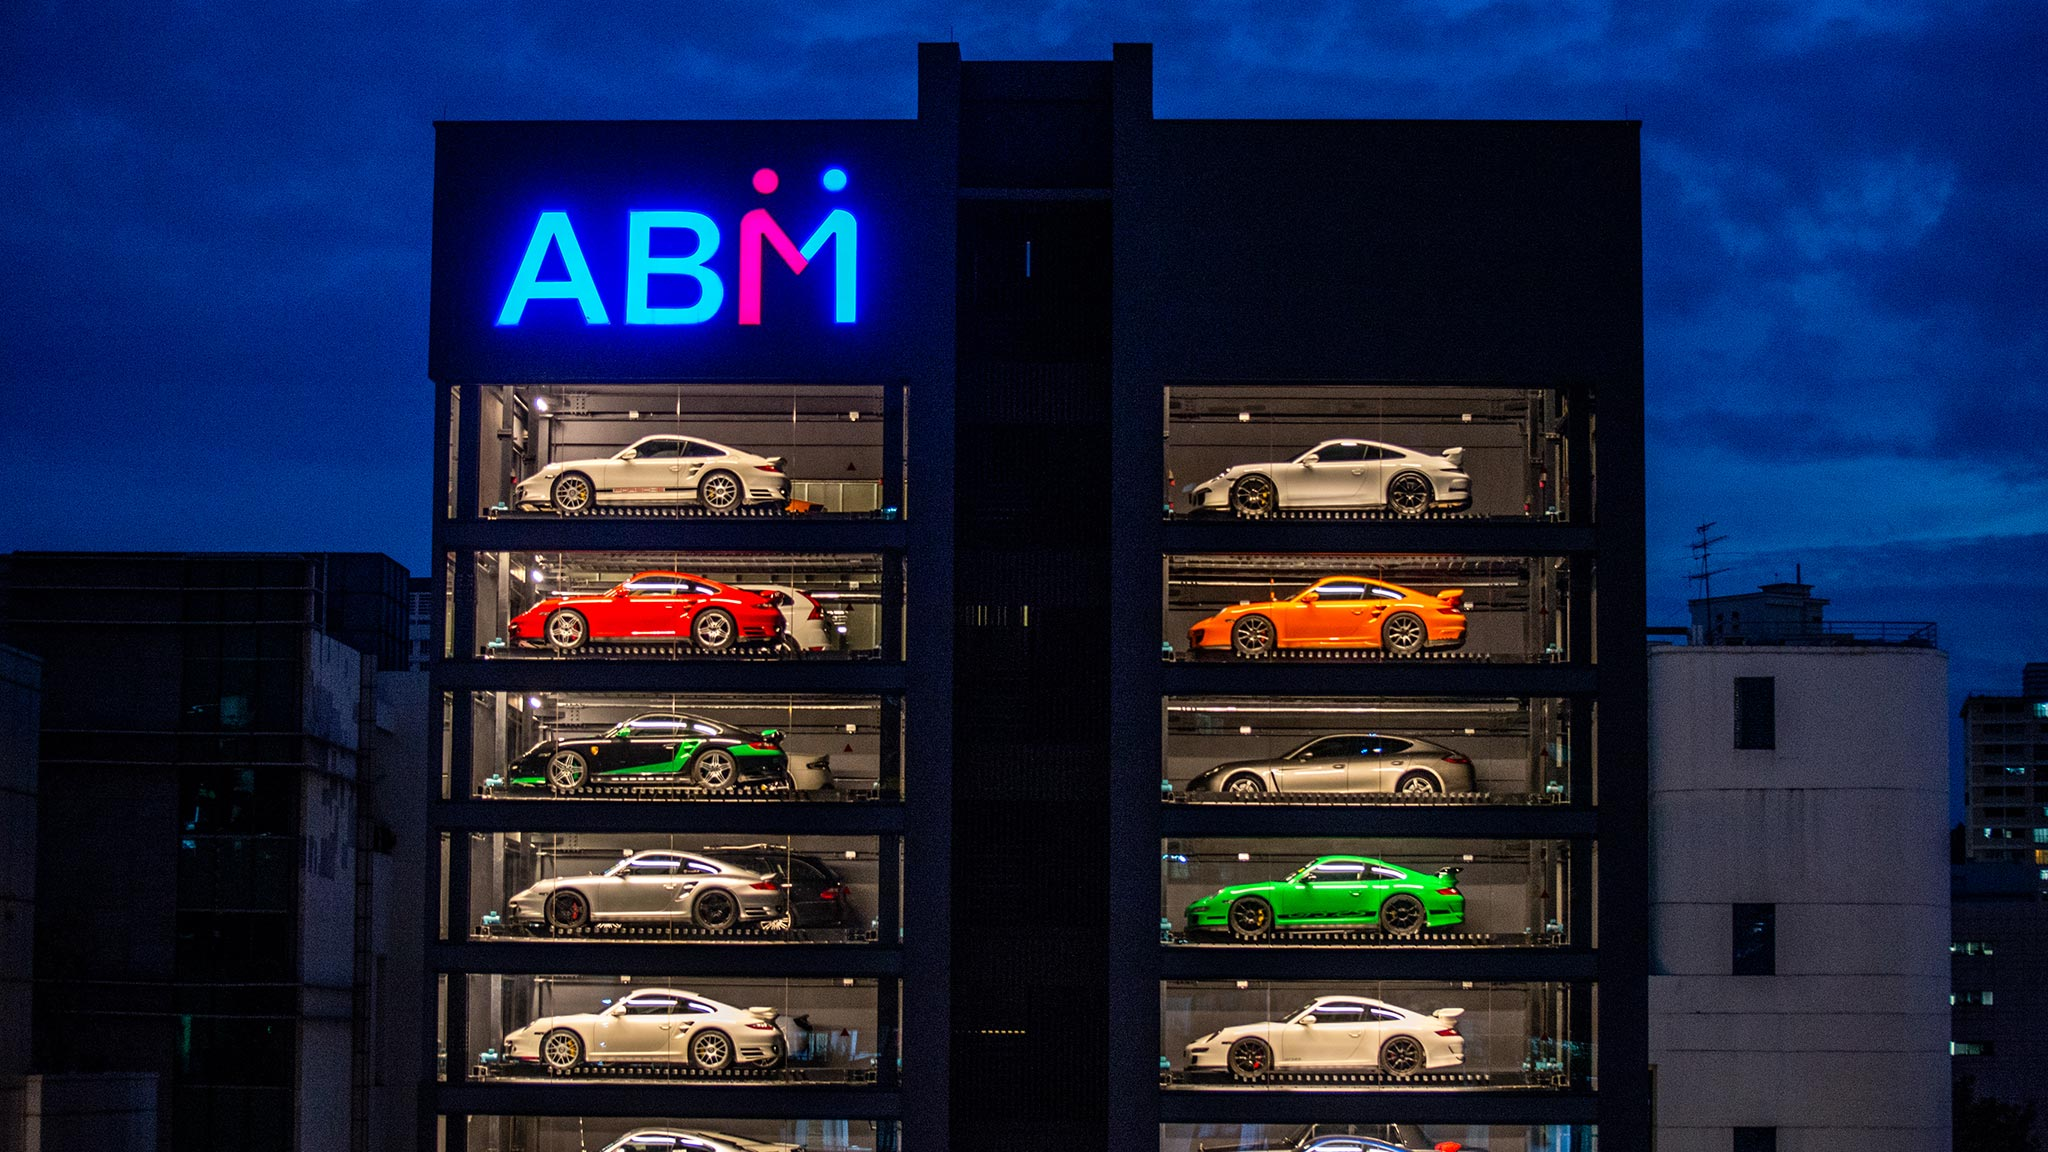 Coming Soon To China Luxury Cars Sold By Vending Machine